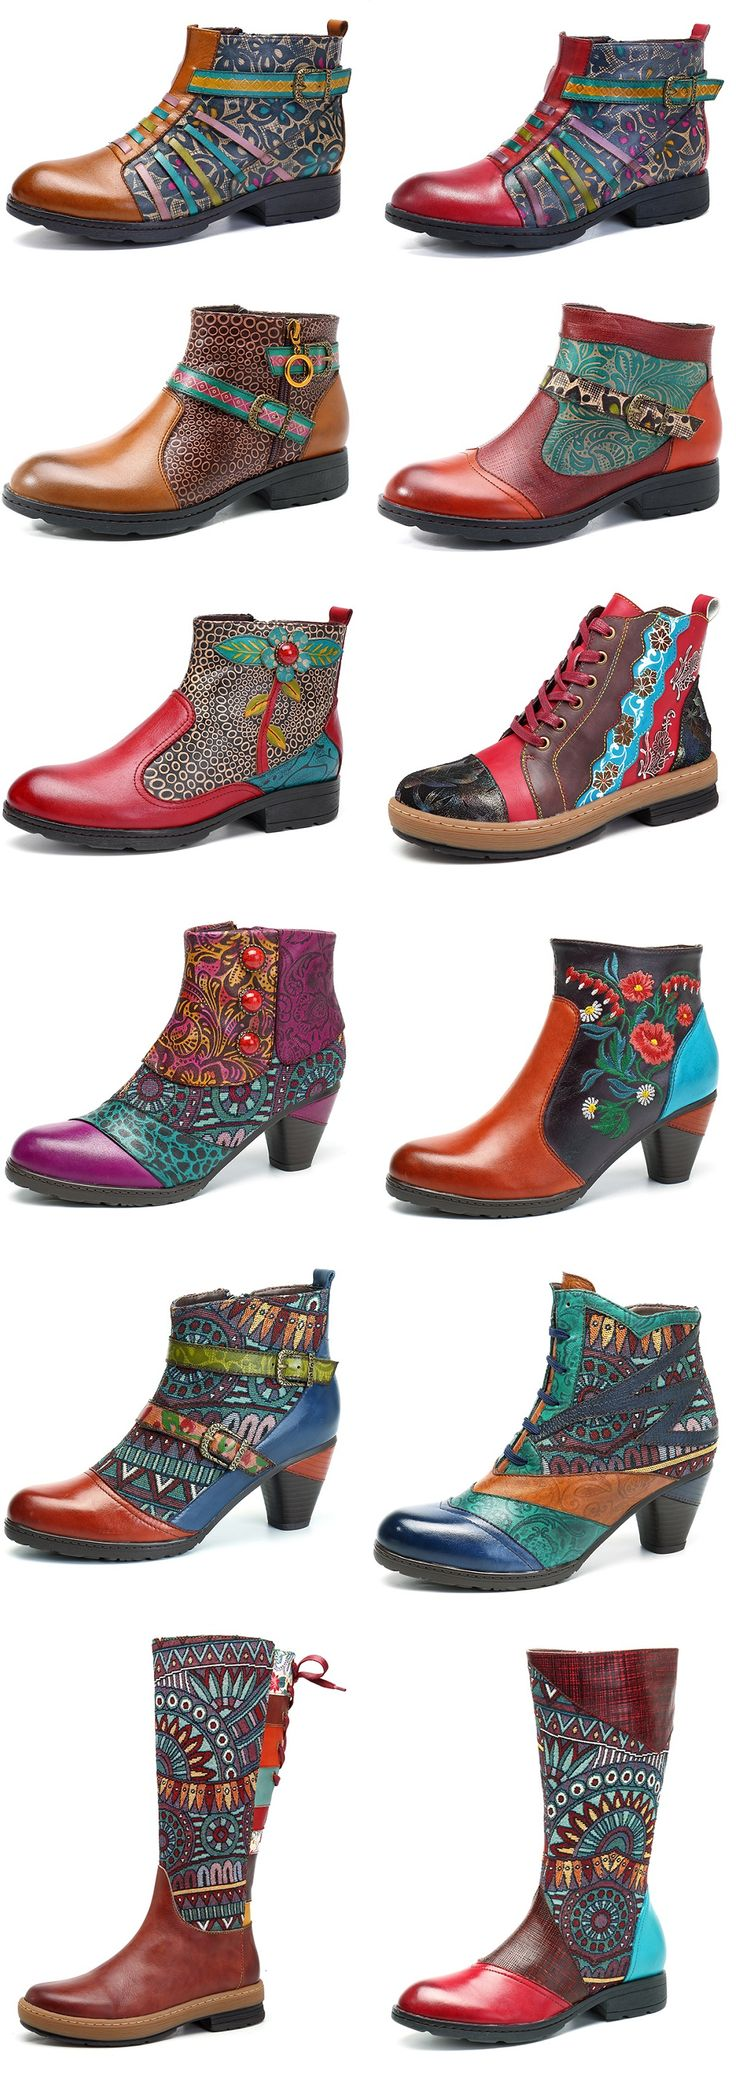 Winter is almost here.Find diffirent kinds of shoes,boots and winter high heel on Newchic,keep yourself in warm but stylish everyday.Don't miss the big deals on Newchic.Shop with me today.